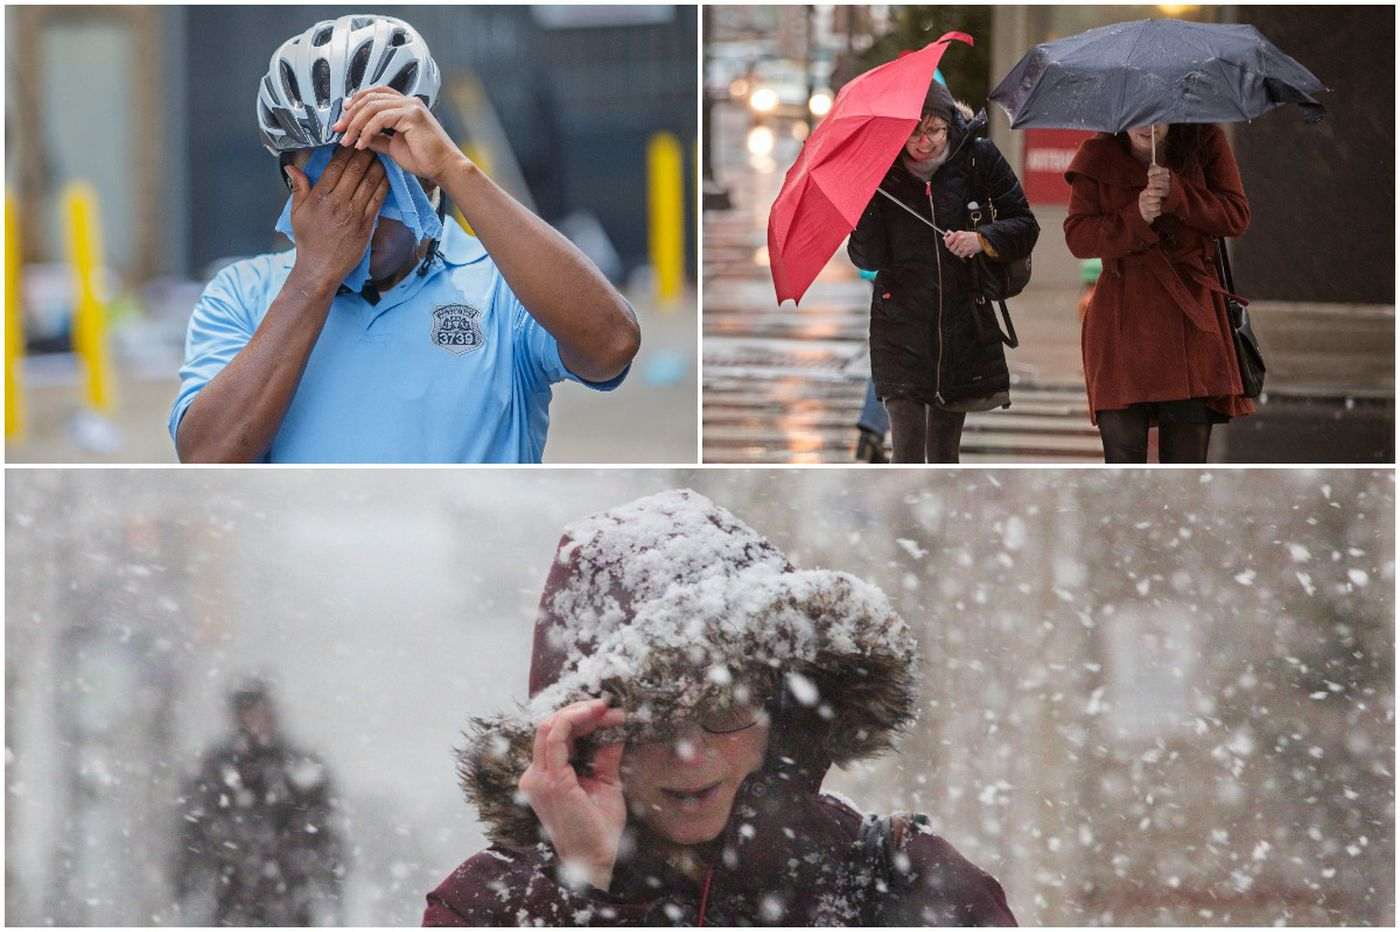 Philadelphia is getting hotter, wetter, and snowier at the same time